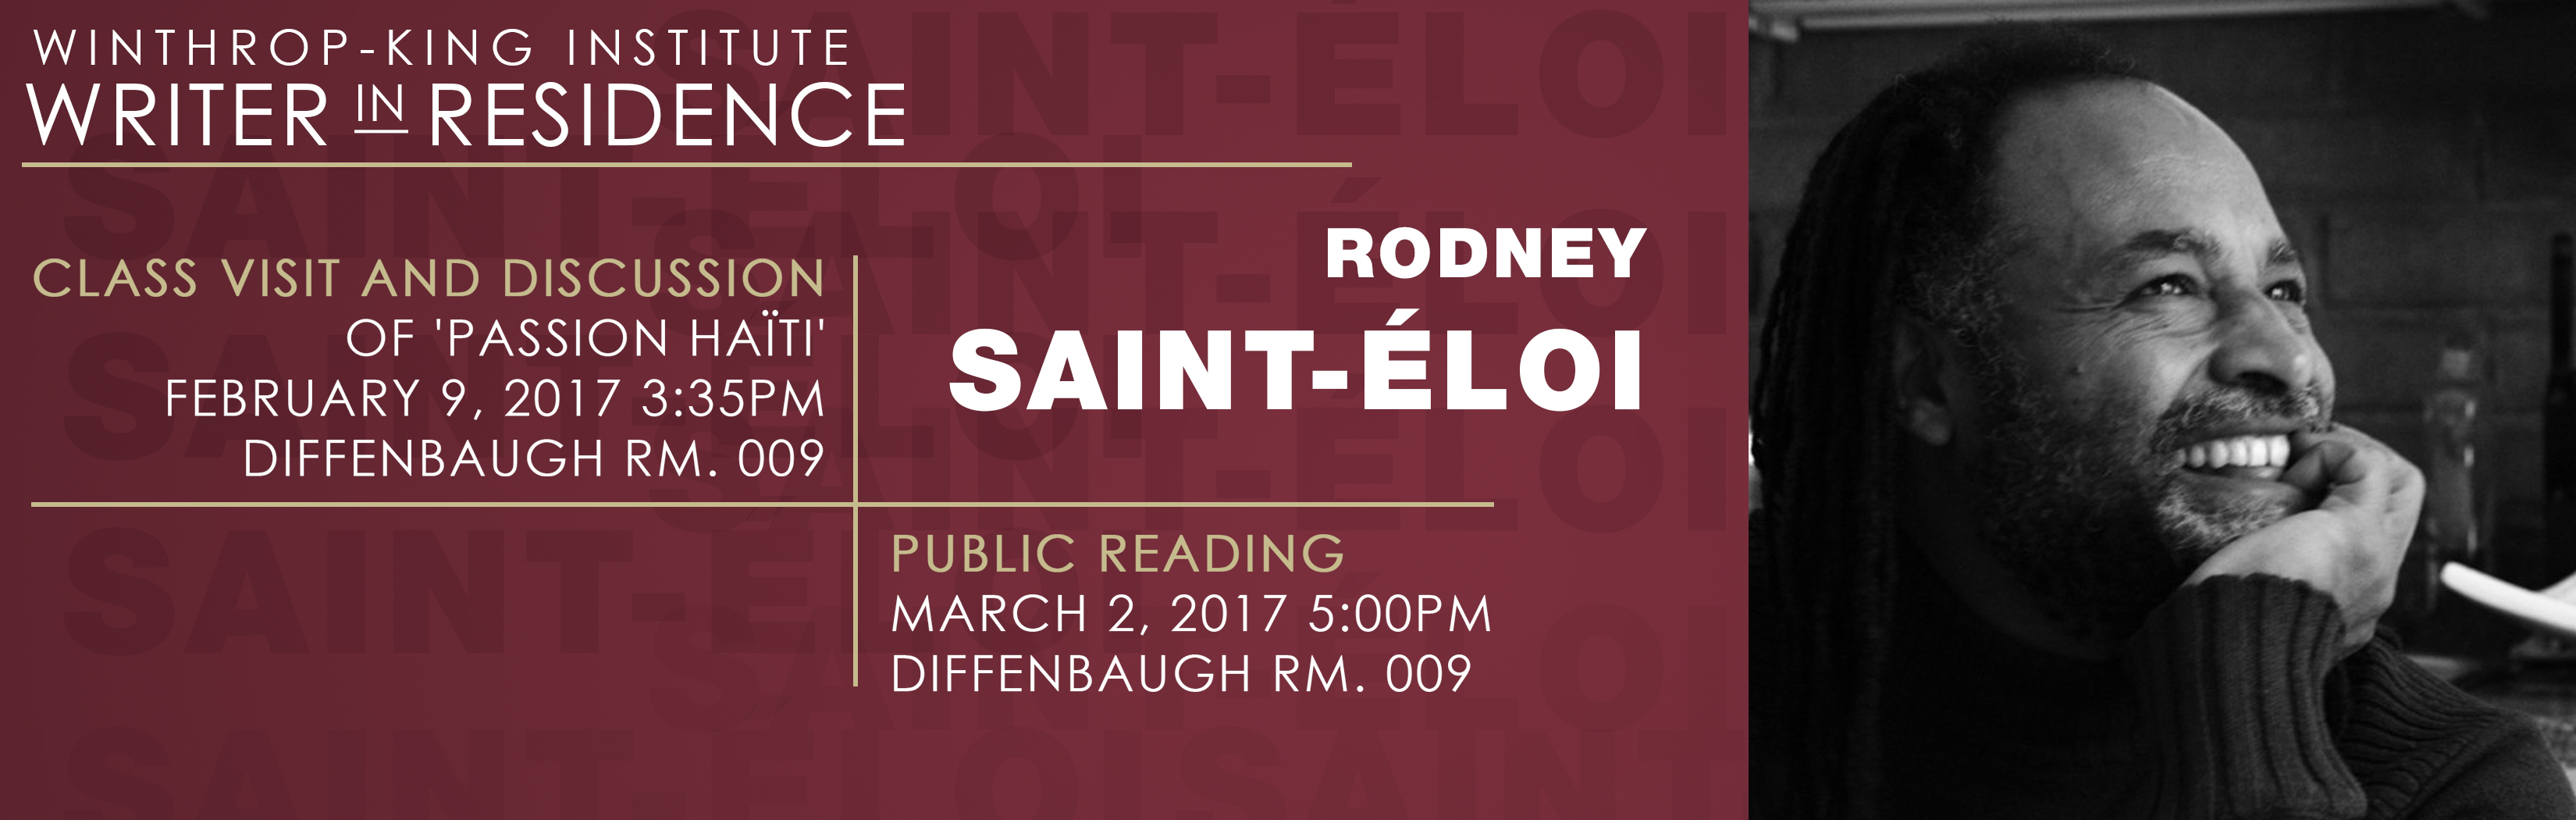 Banner for Writer in Residence, Rodney Sain-Éloi